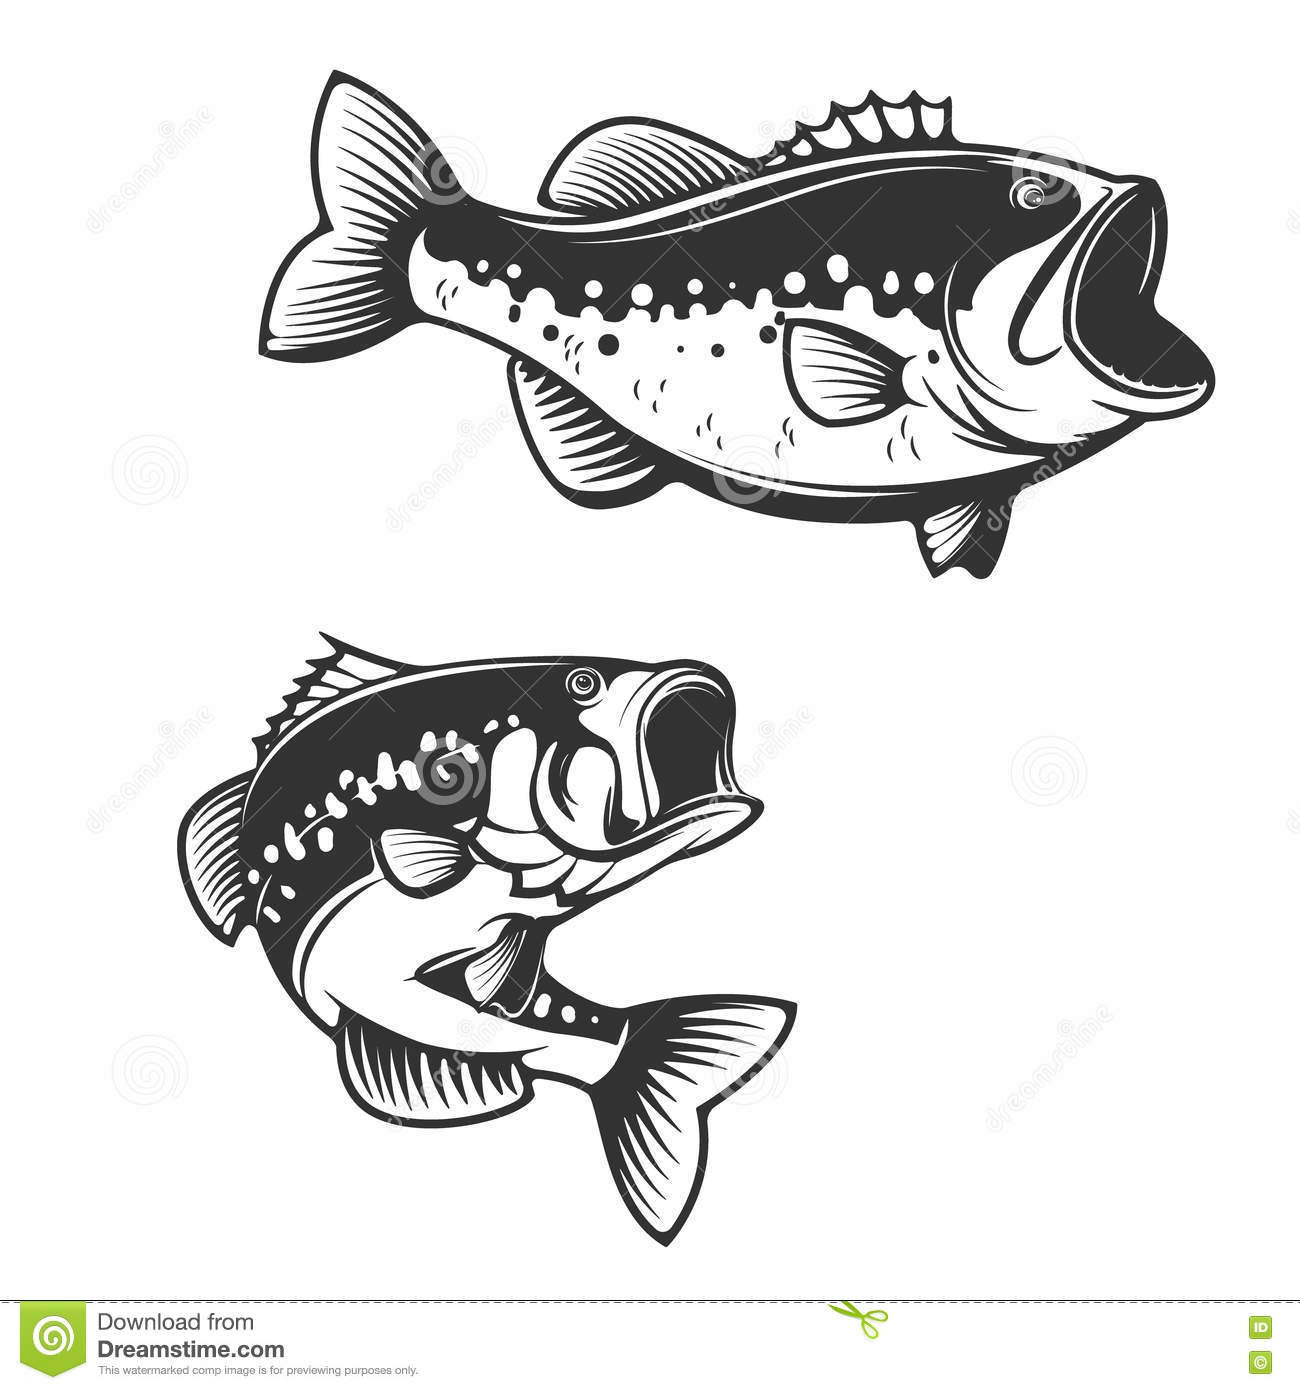 Background image e - Sea Bass Fish Silhouettes Isolated On White Background Design E Stock Vector